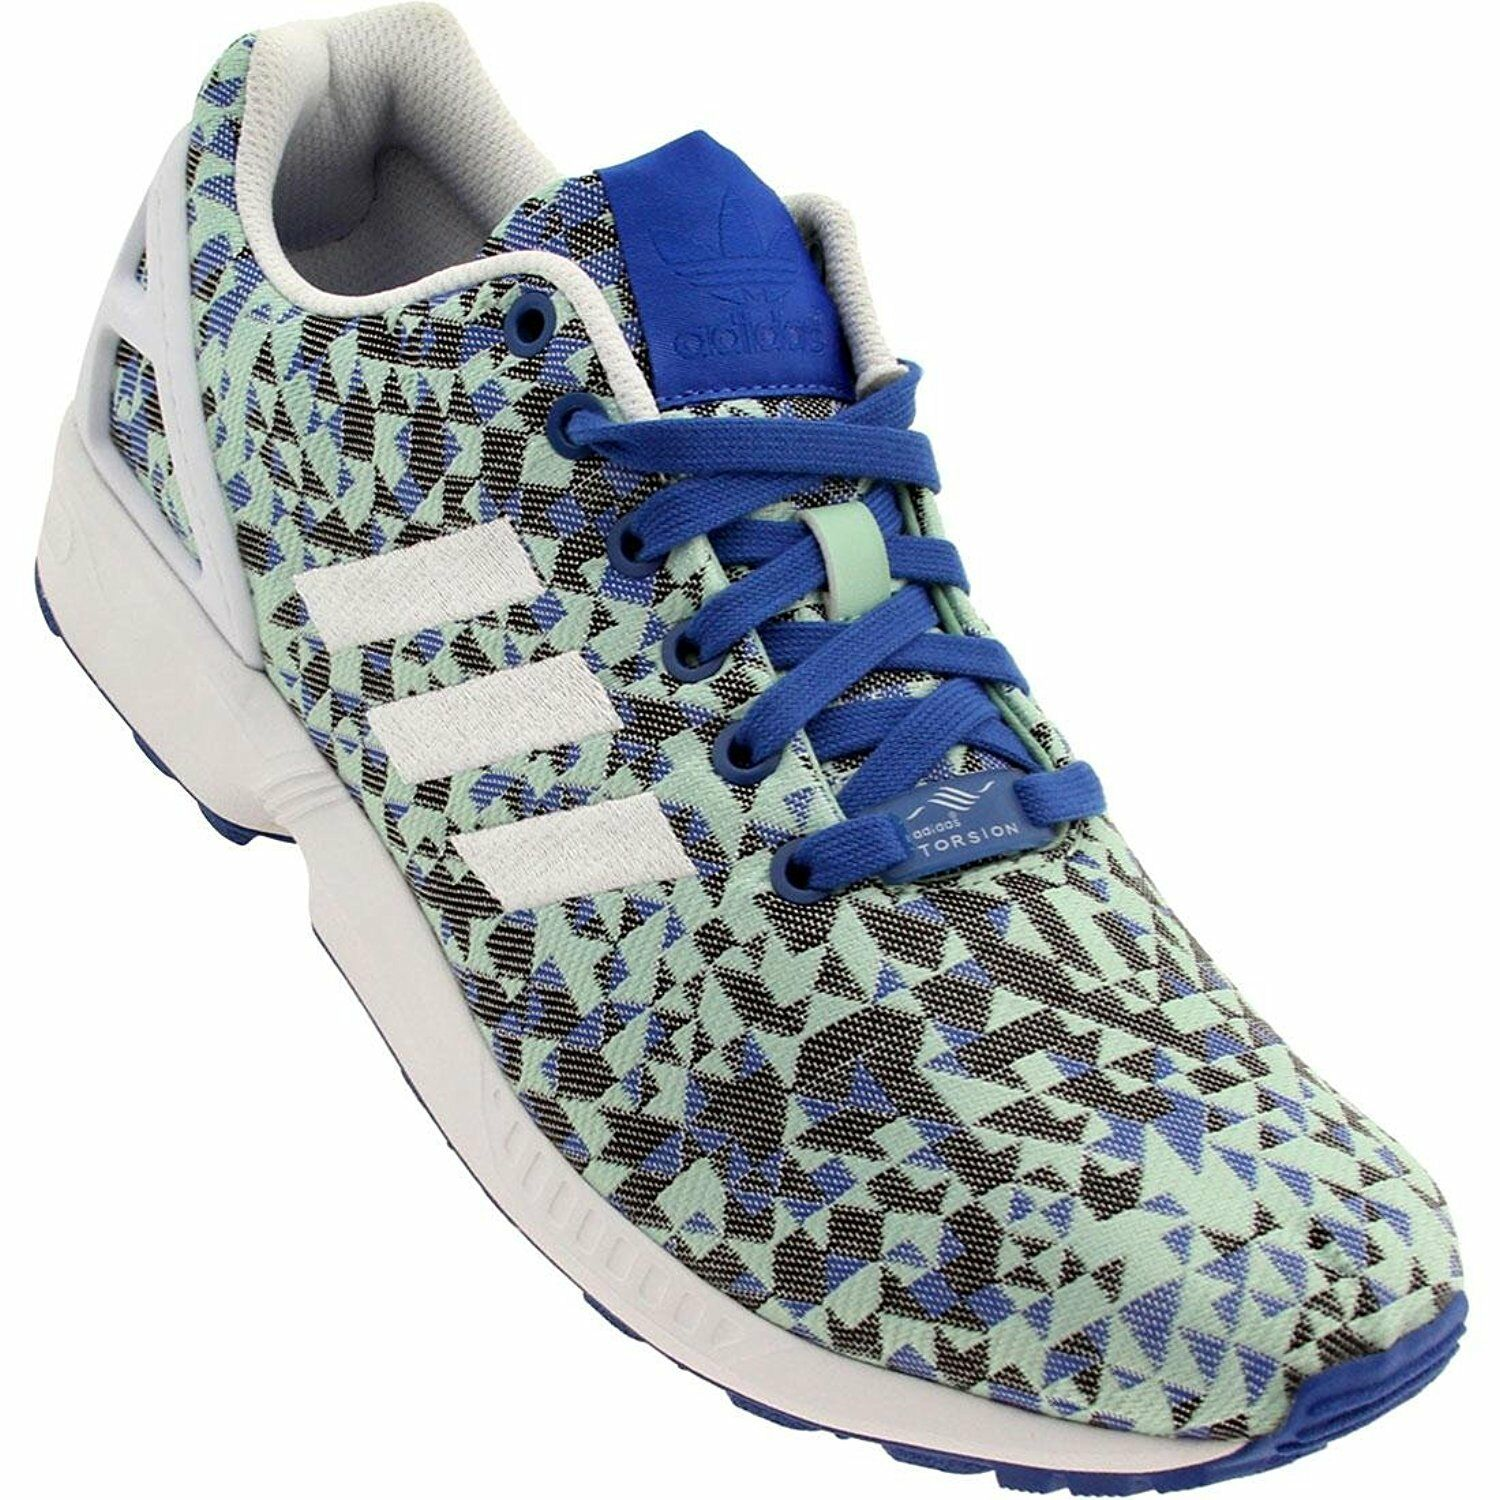 Adidas ADB34474- ADIDAS ZX FLUX WEAVE MENS RUNNING SHOES- Choose SZ color.